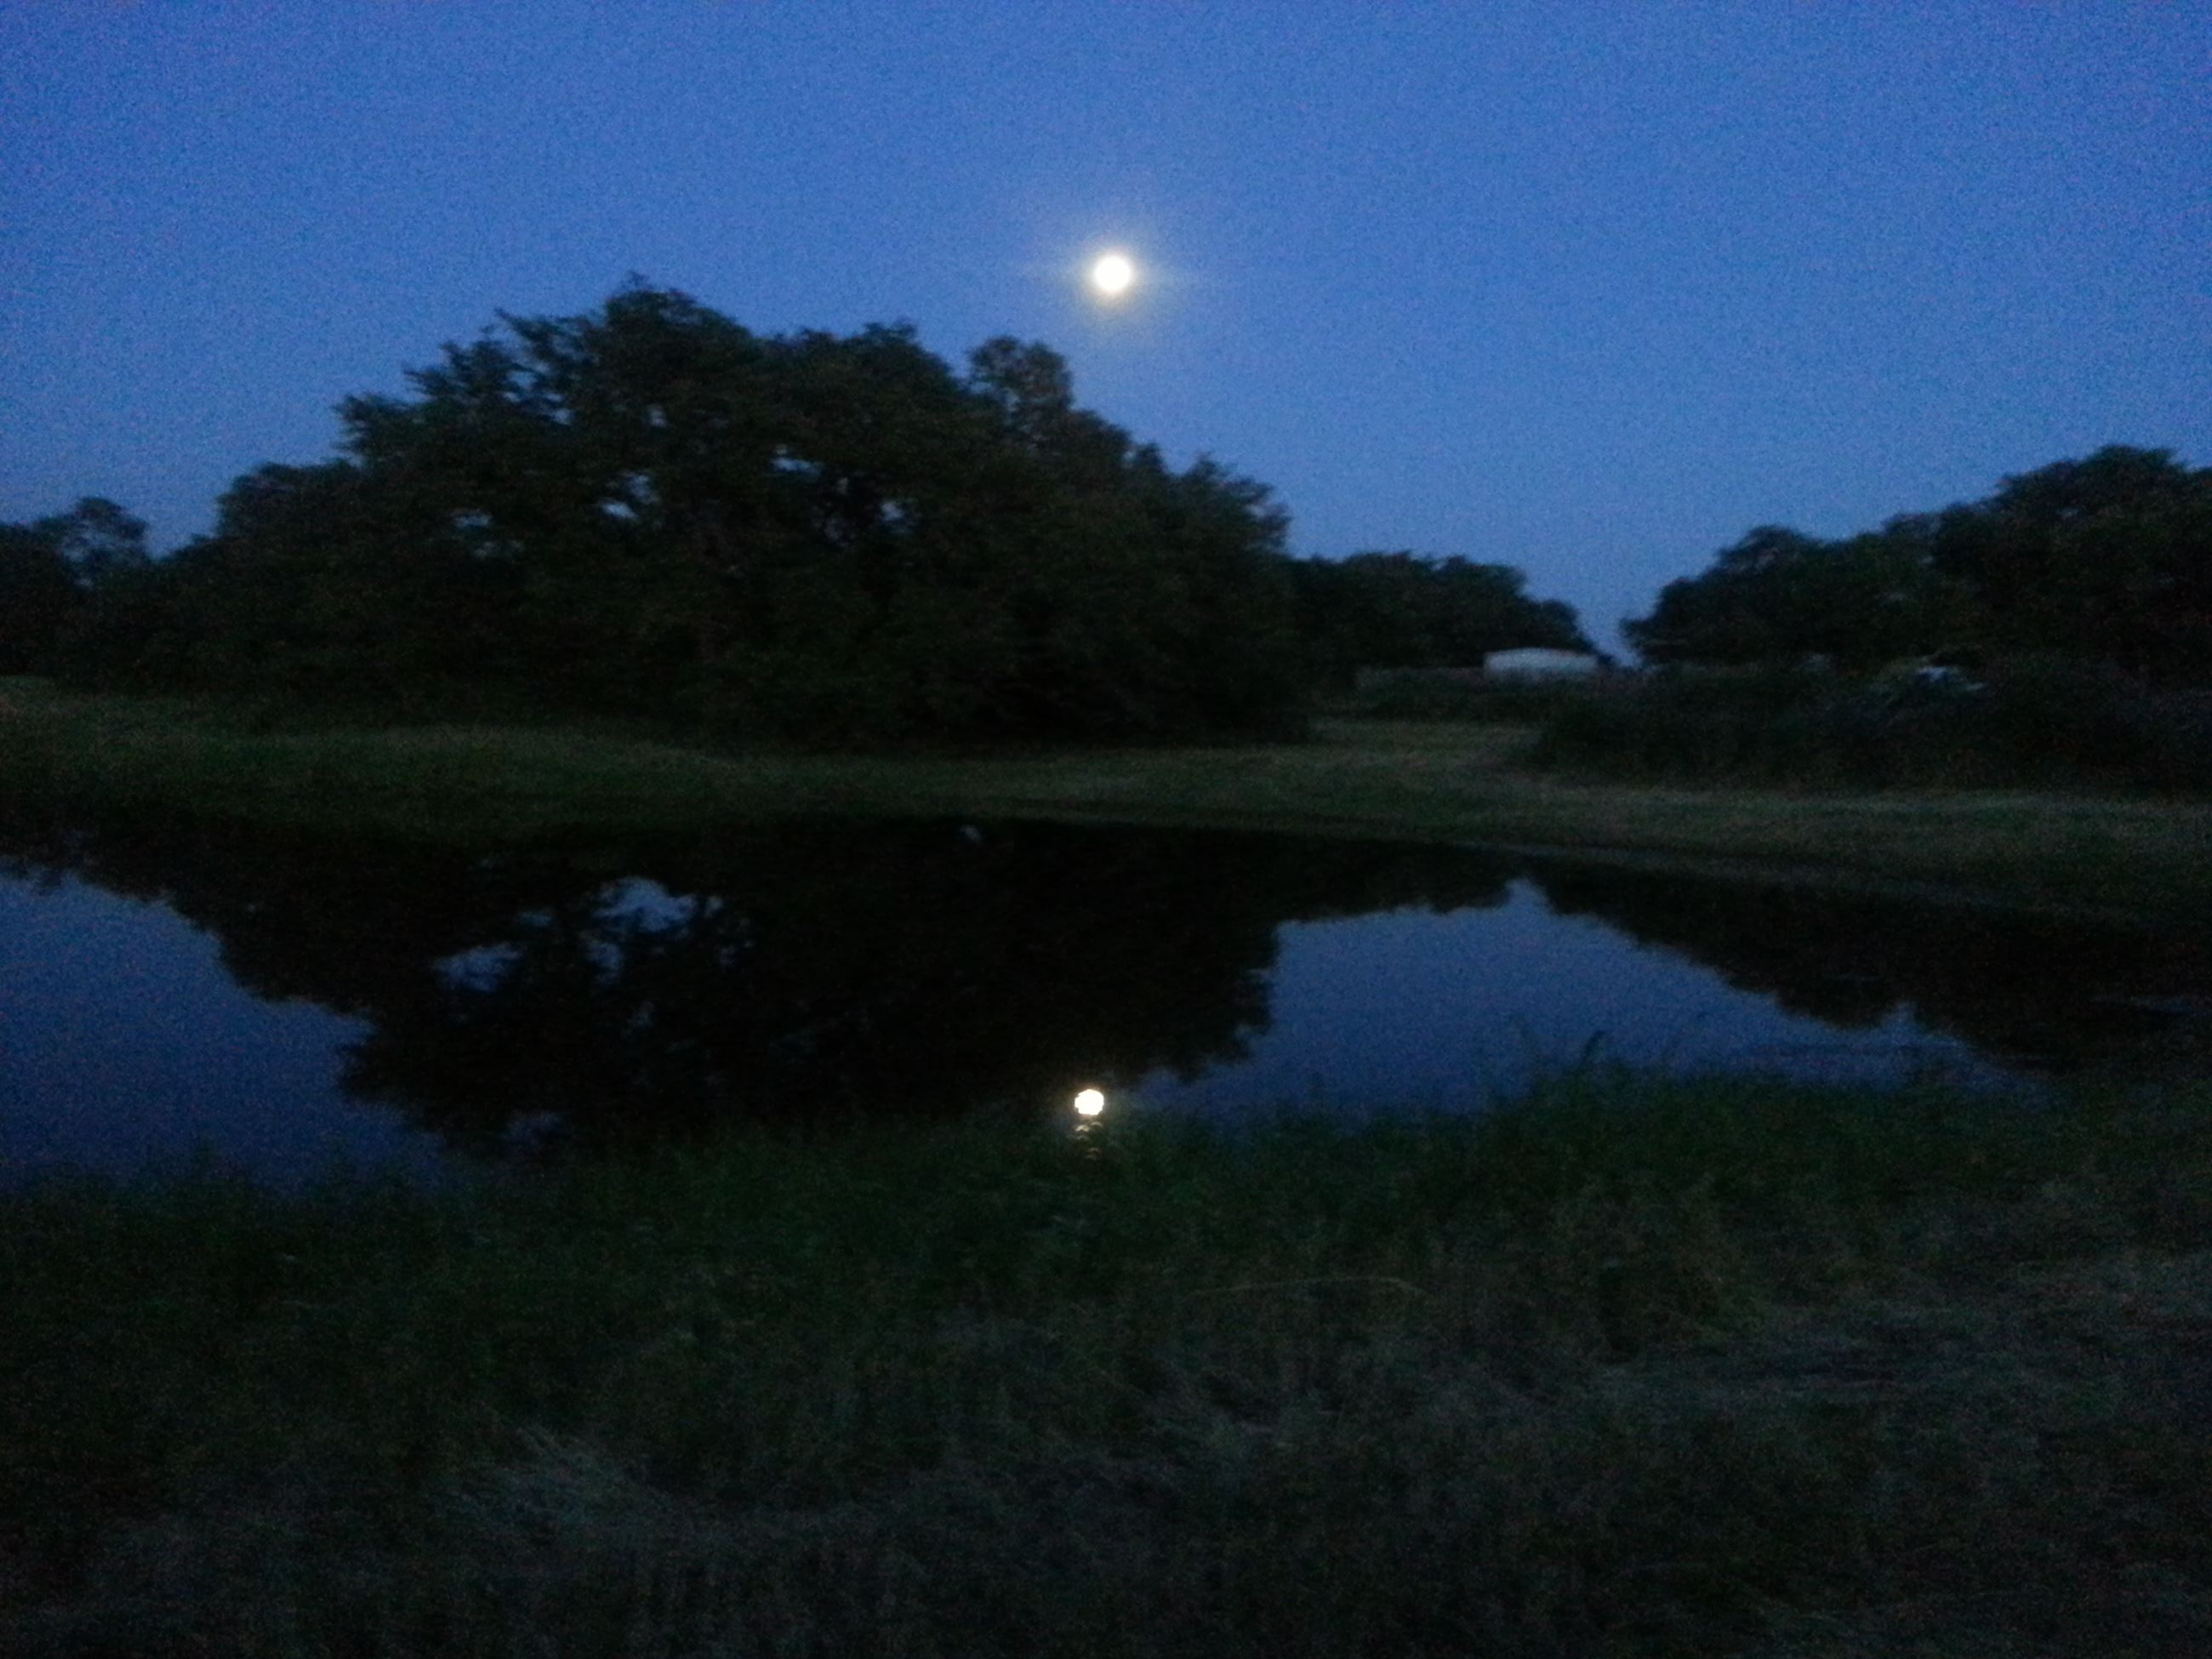 FULL MOON OVER BROWNWOOD Submitted by Gwen Stone